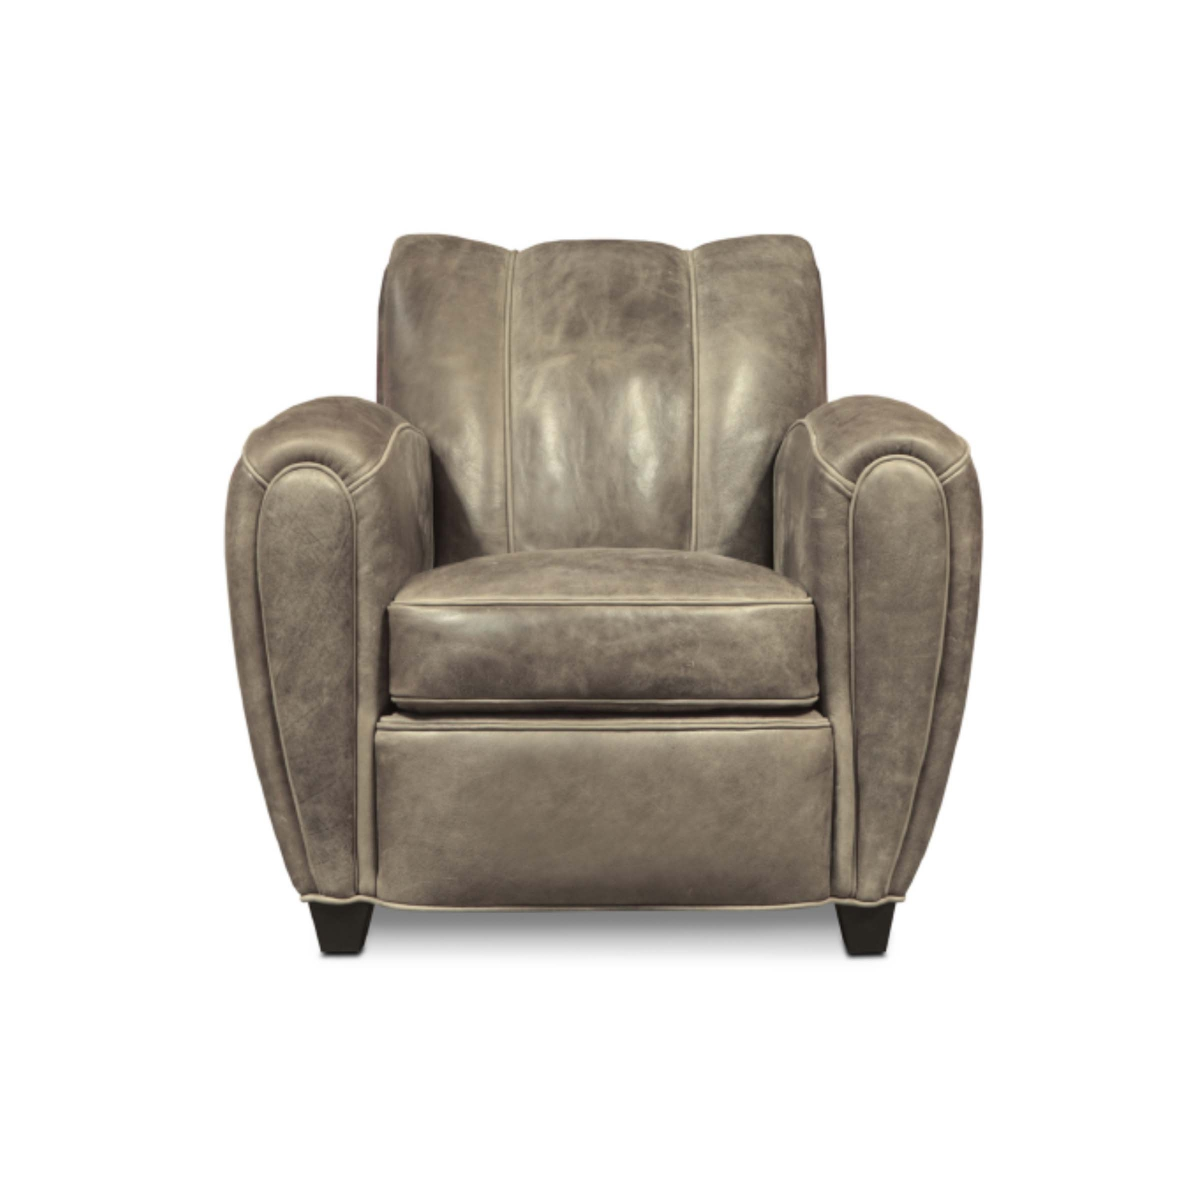 accent chair recliner egg wicker chairs outdoor luxury recliners eleanor rigby home manon jules 1e